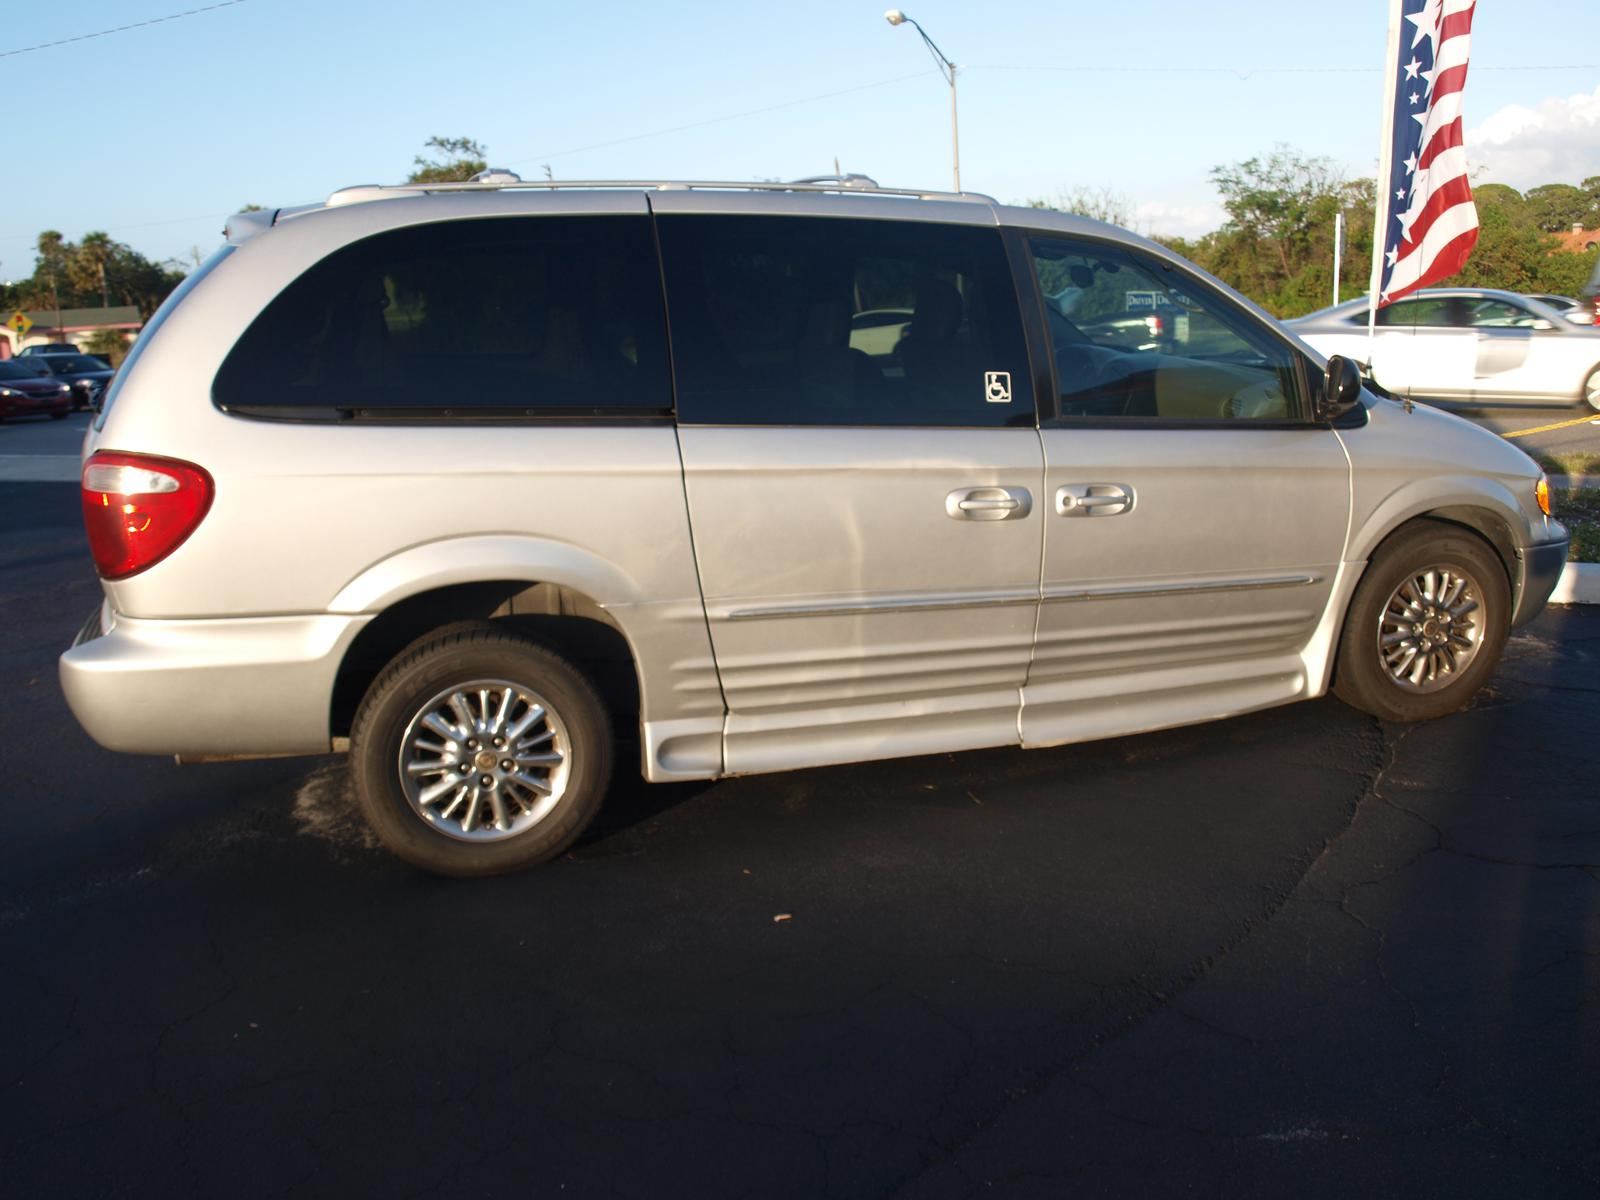 2002 Chrylser Limited With VMI Wheelchair Van Conversion Warranty Bumper To Mobility Medical Equipment